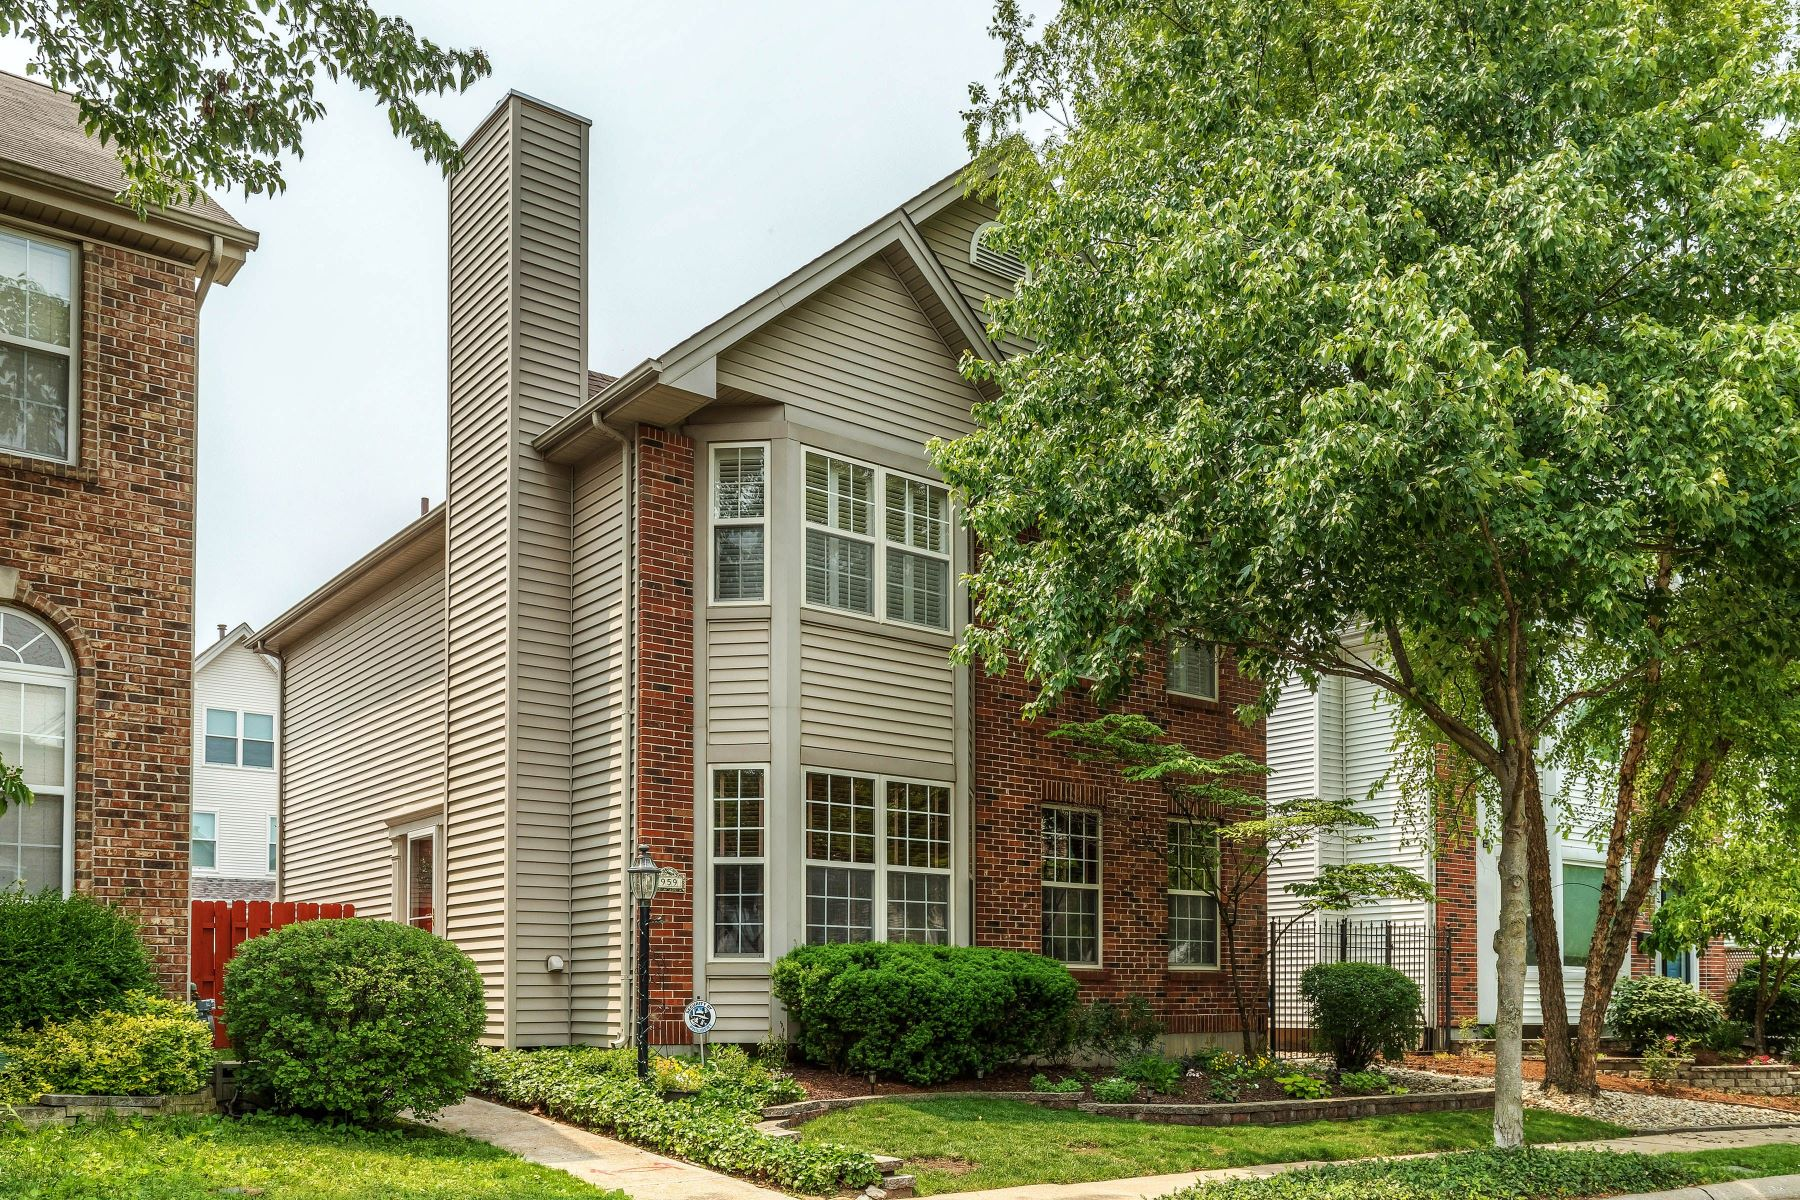 single family homes for Sale at A Trifecta! Great House, Great Floor Plan, Great Location 959 Morehouse Lane University City, Missouri 63130 United States